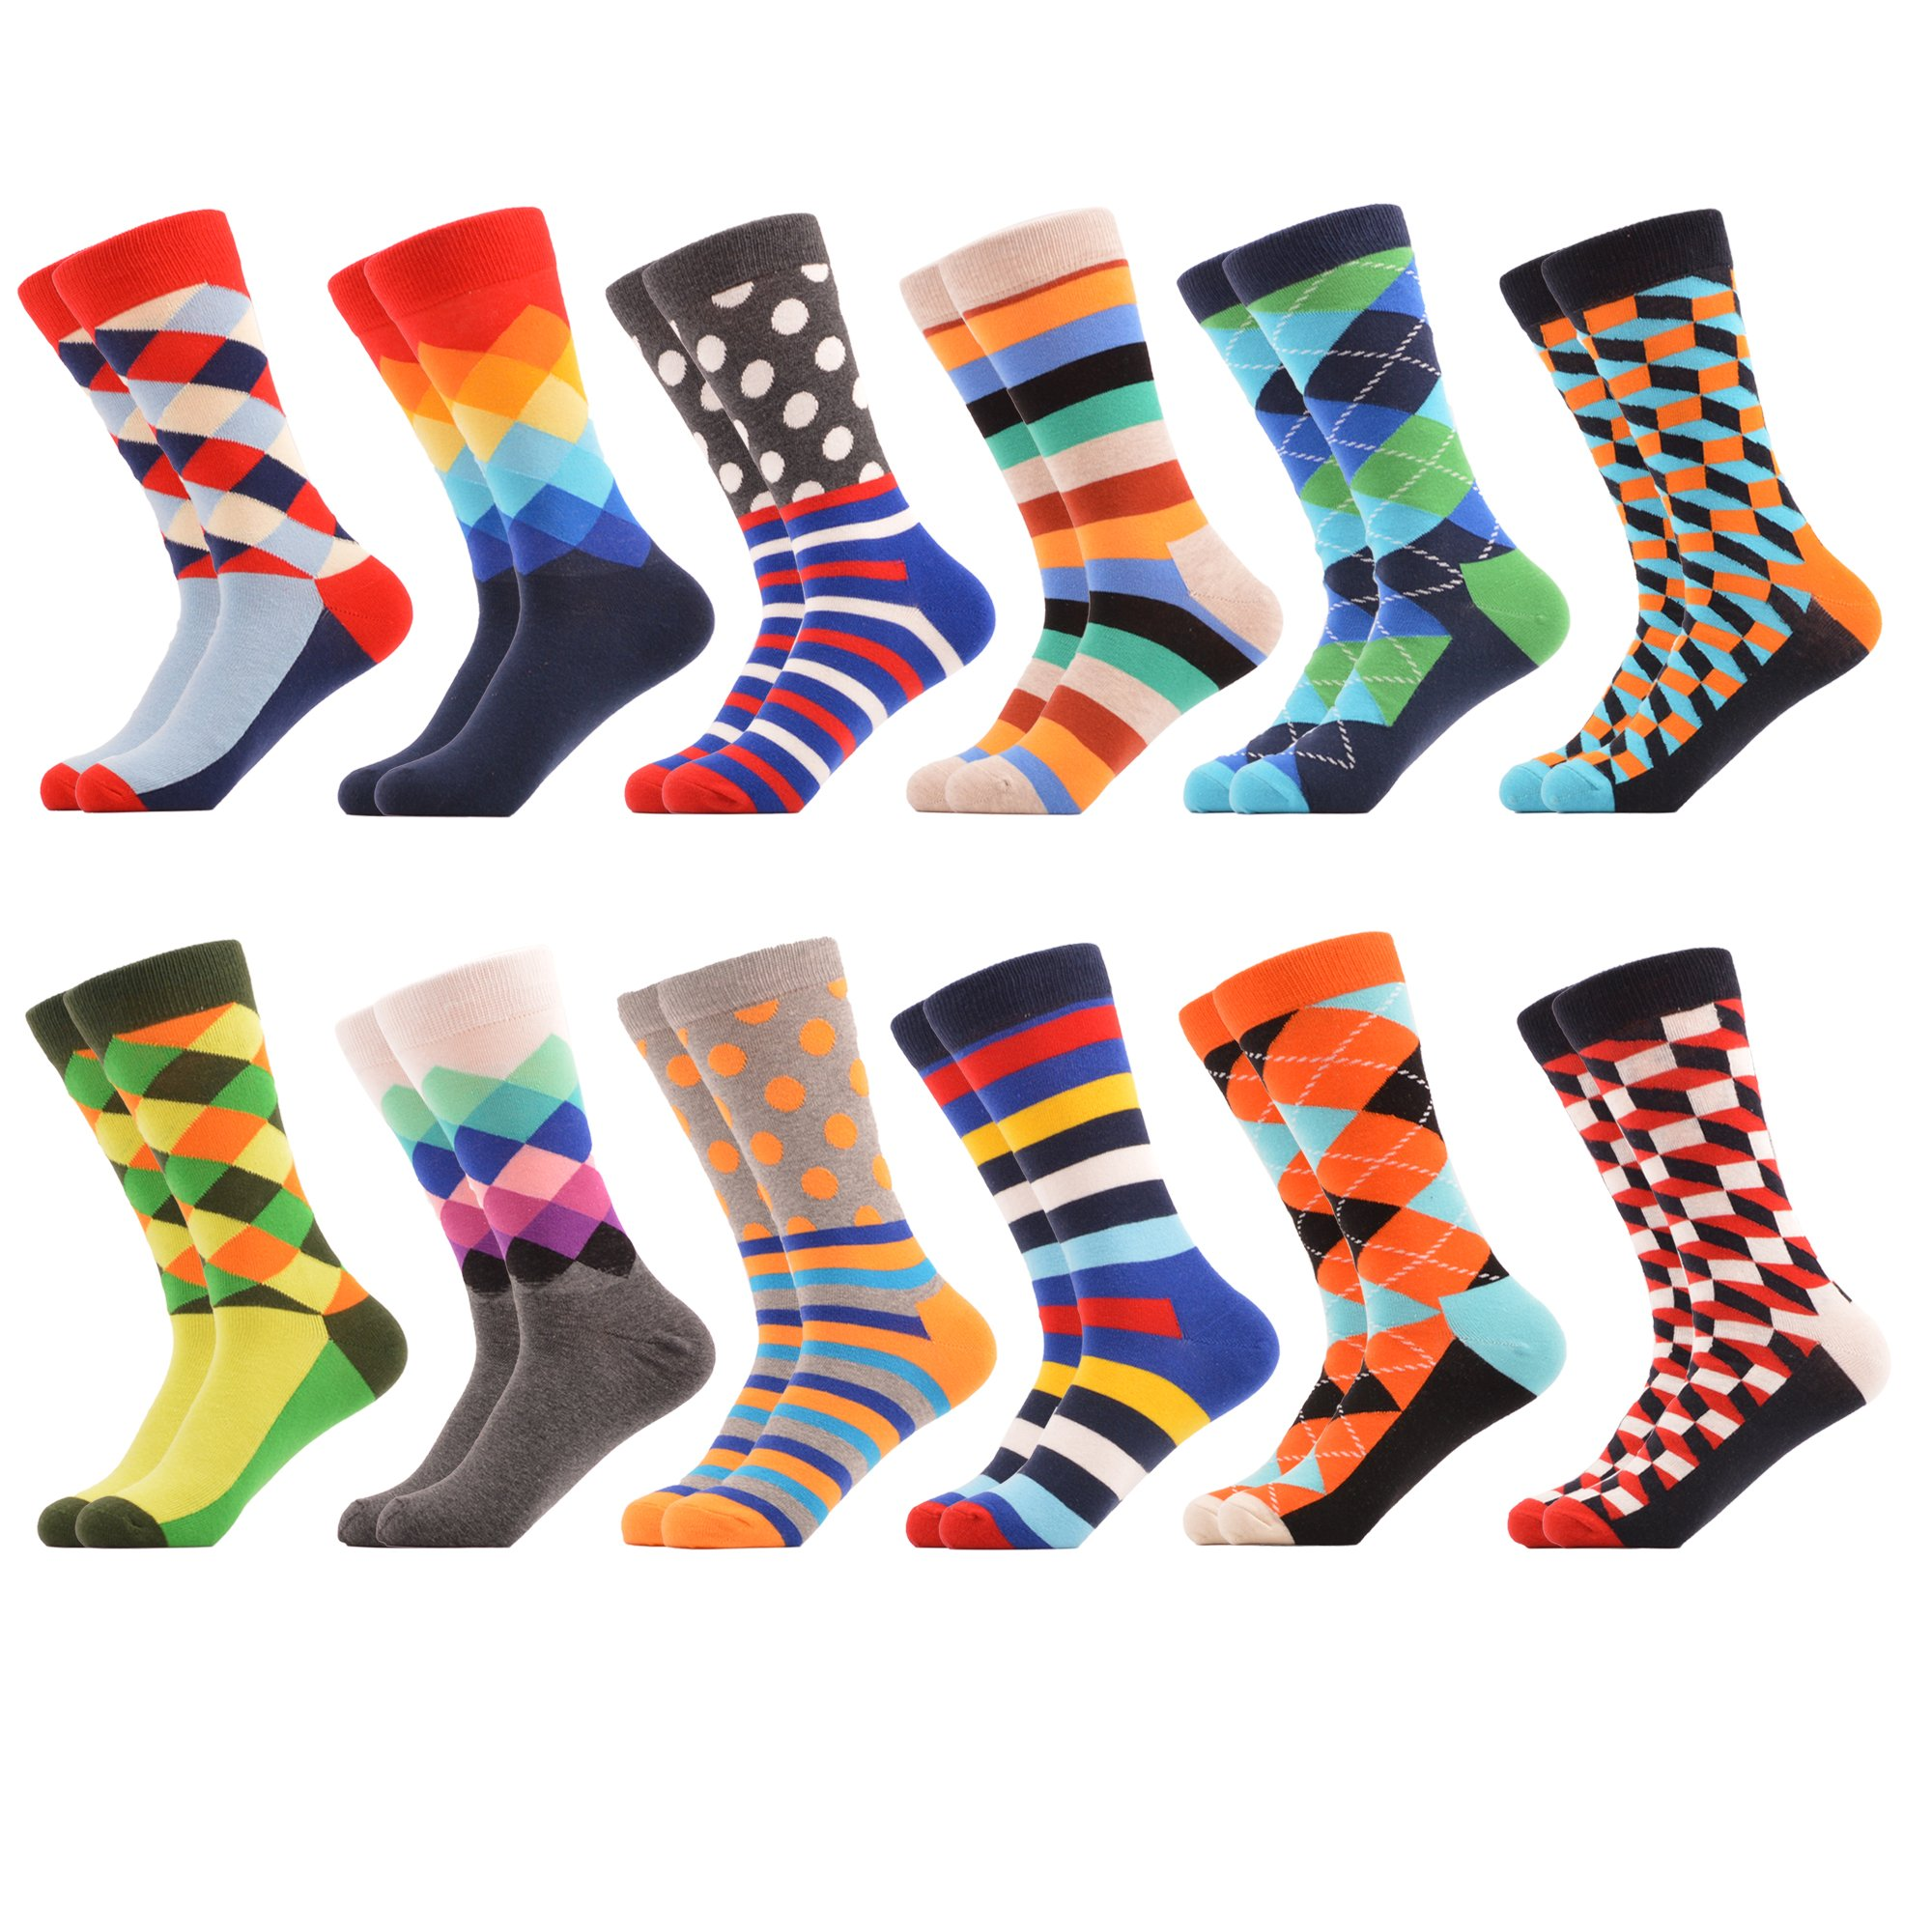 WeciBor Men's Dress Party Colorful Funny Cotton Crew Socks 12 Packs by WeciBor